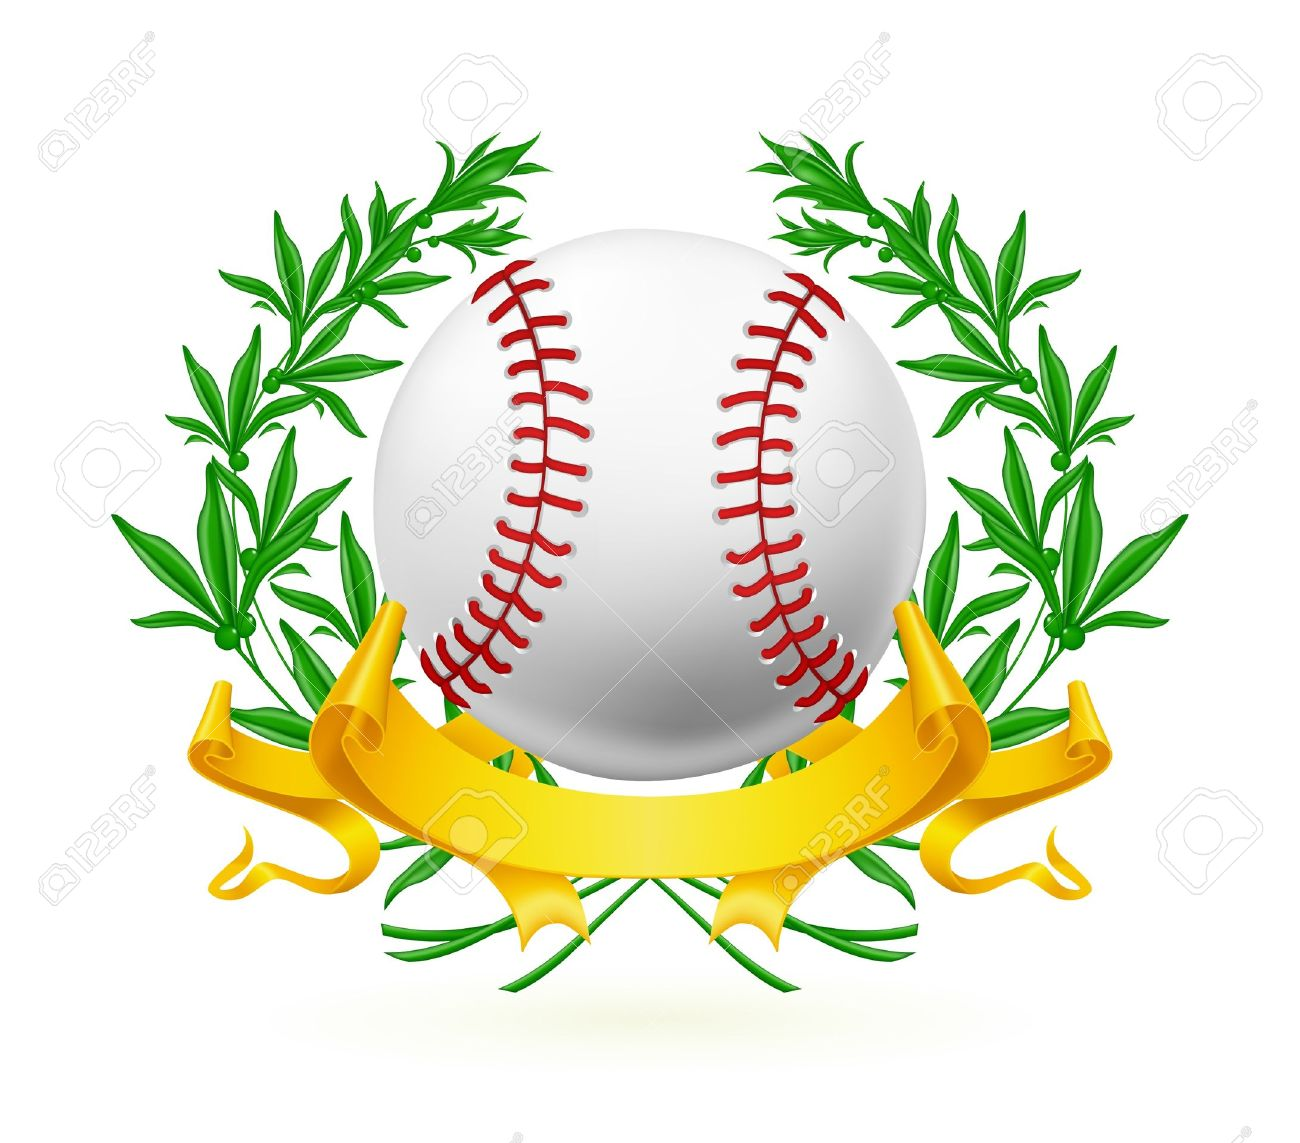 Baseball Emblem Royalty Free Cliparts, Vectors, And Stock.